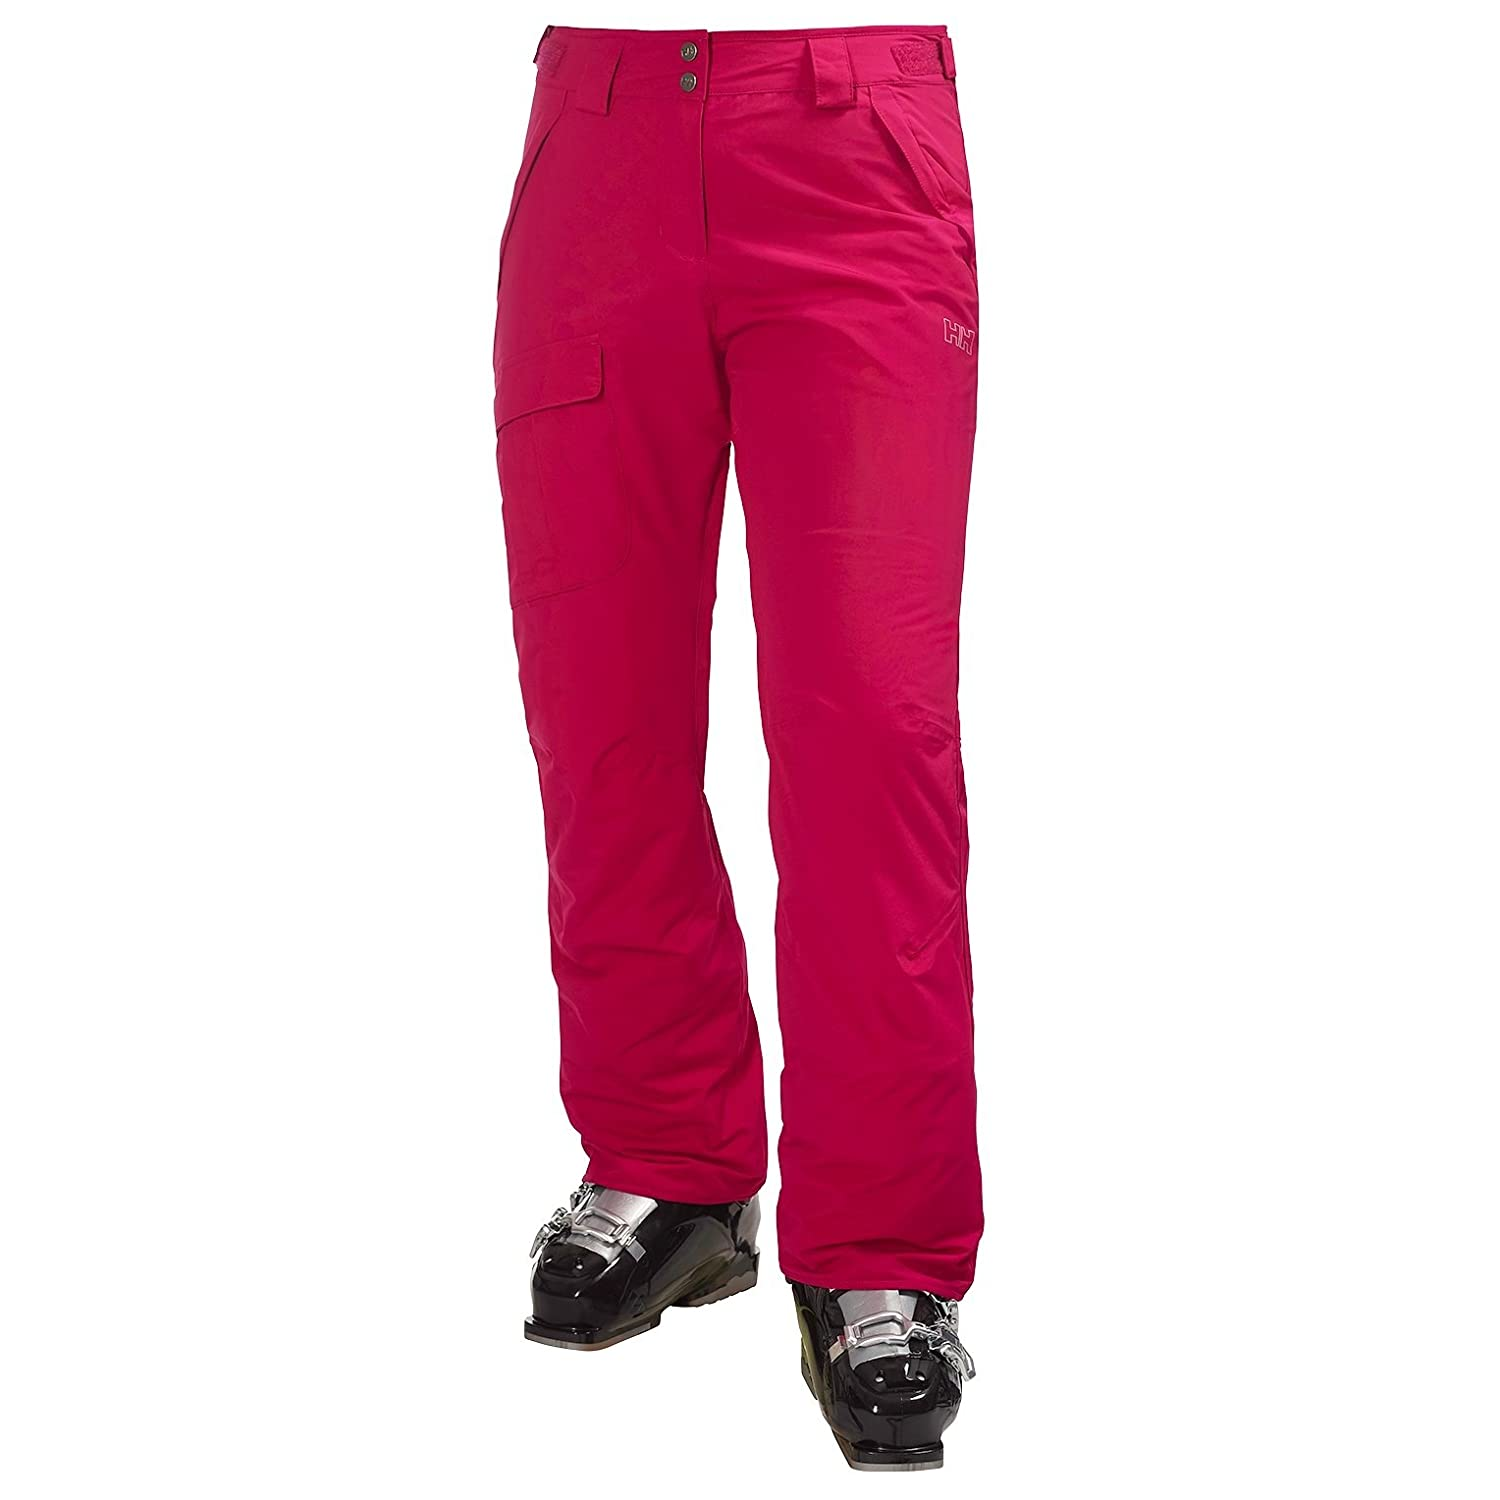 Helly Hansen Damen Hose W Sensation Pants